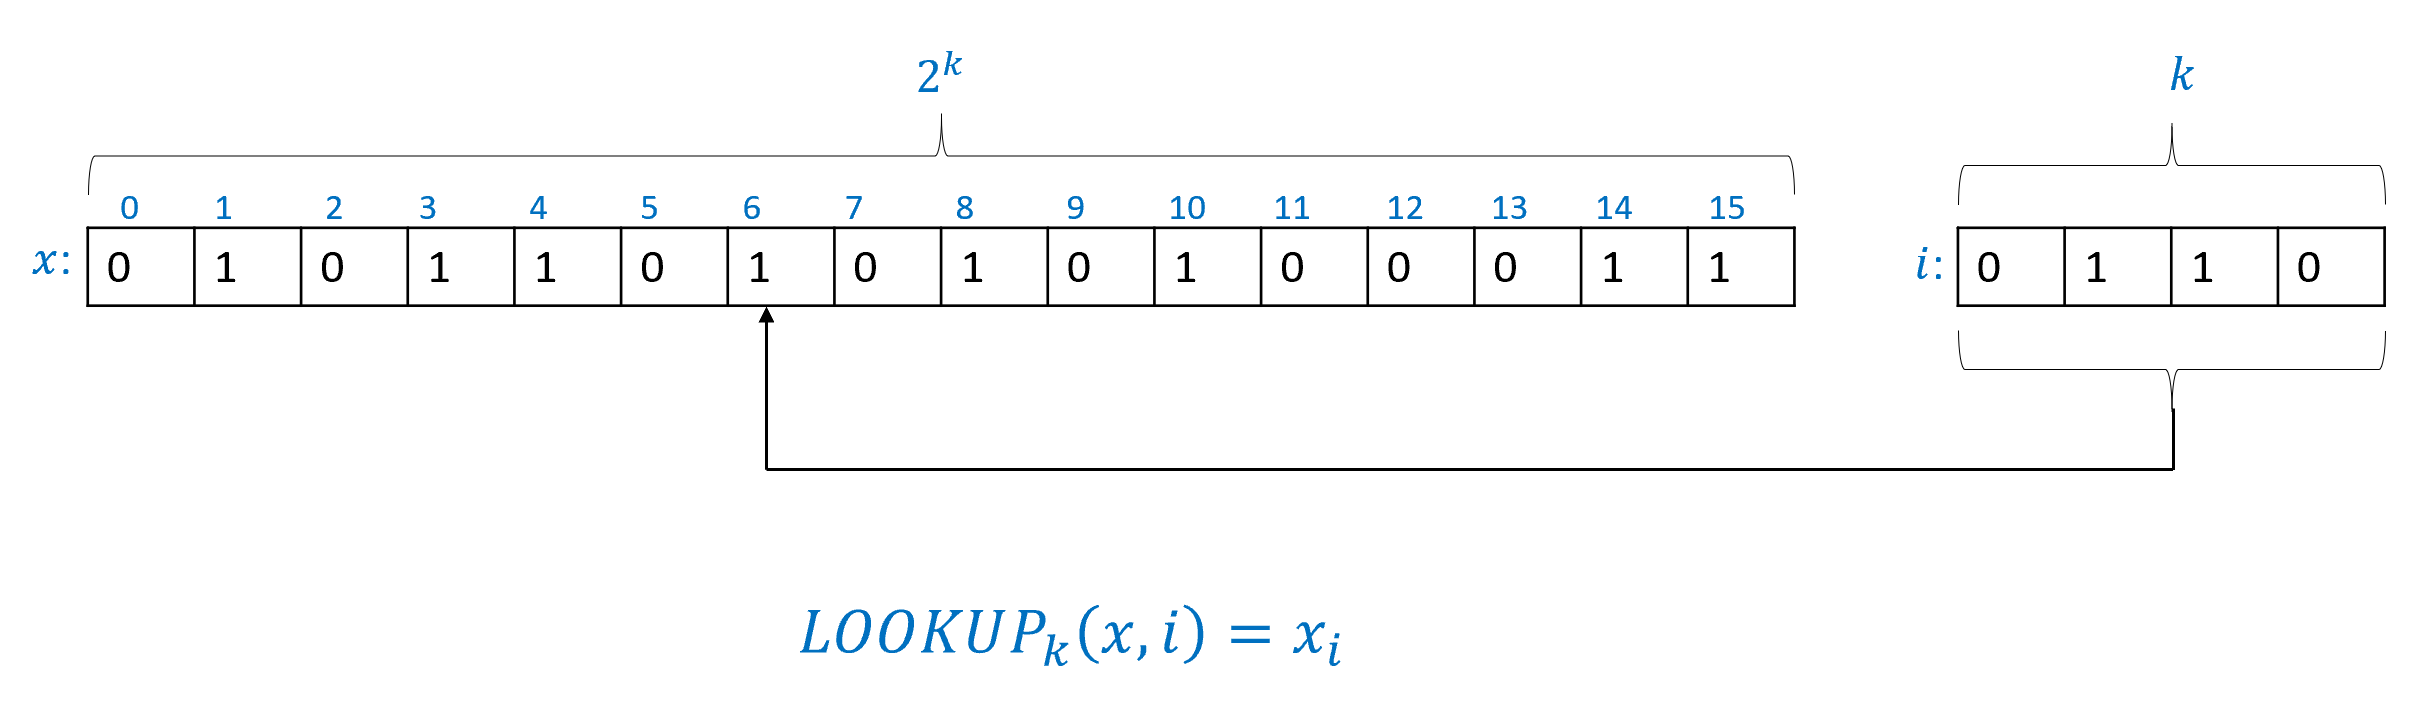 The \ensuremath{\mathit{LOOKUP}}_k function takes an input in \{0,1\}^{2^k+k}, which we denote by x,i (with x\in \{0,1\}^{2^k} and i \in \{0,1\}^k). The output is x_i: the i-th coordinate of x, where we identify i as a number in [k] using the binary representation. In the above example x\in \{0,1\}^{16} and i\in \{0,1\}^4. Since i=0110 is the binary representation of the number 6, the output of \ensuremath{\mathit{LOOKUP}}_4(x,i) in this case is x_6 = 1.